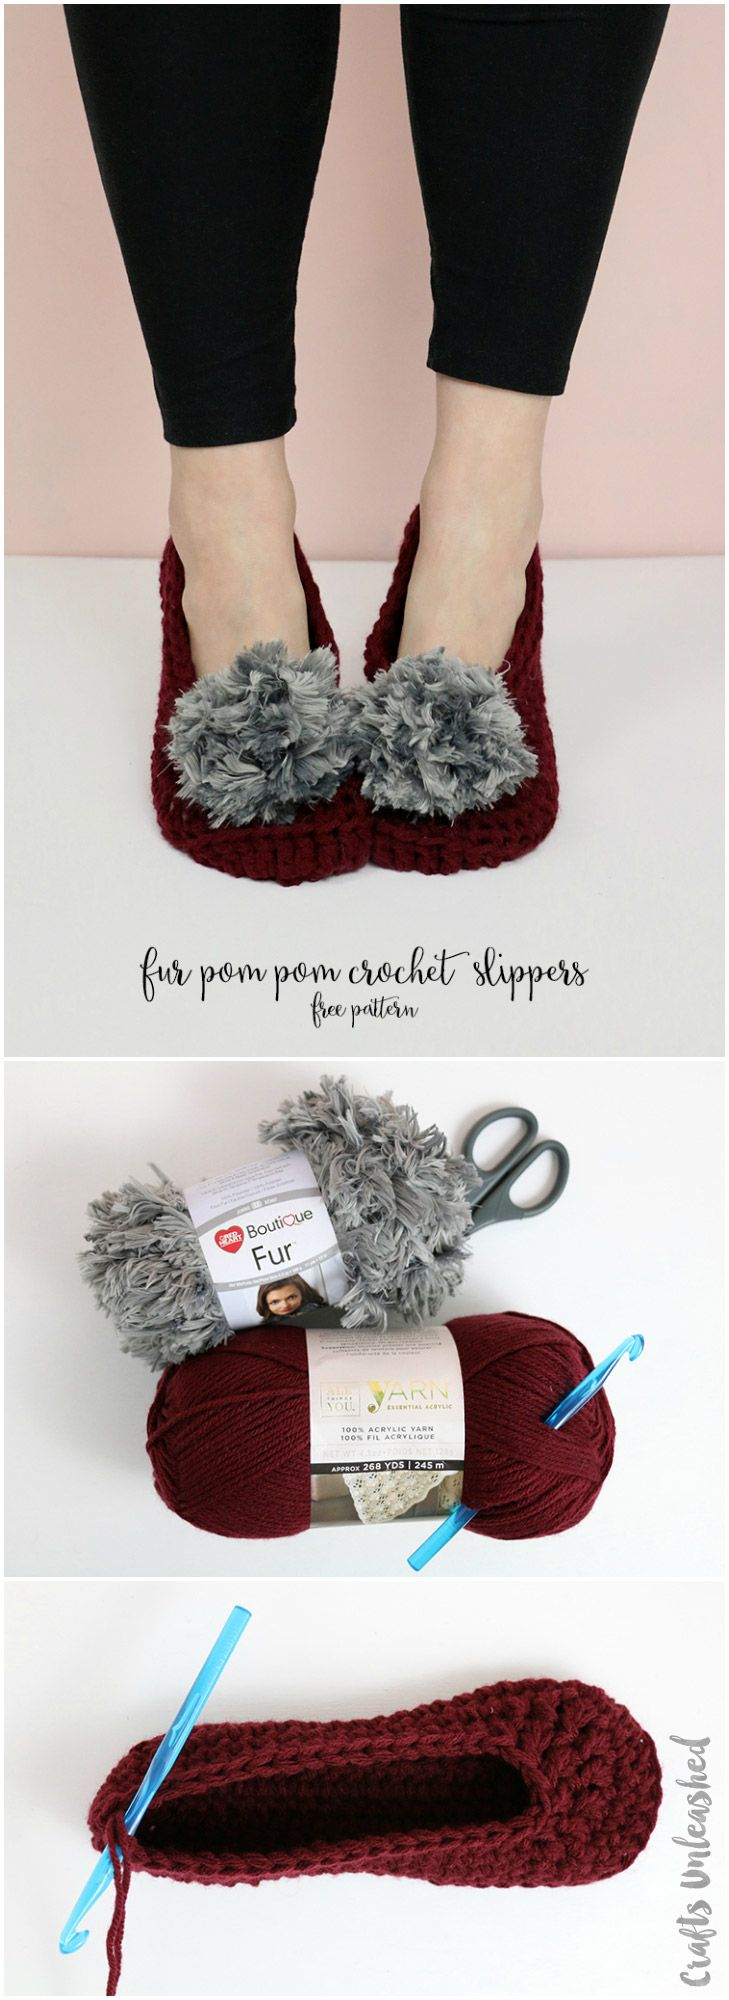 6920446c5 Crochet Slippers: Free Crochet Pattern - Consumer Crafts   old is ...